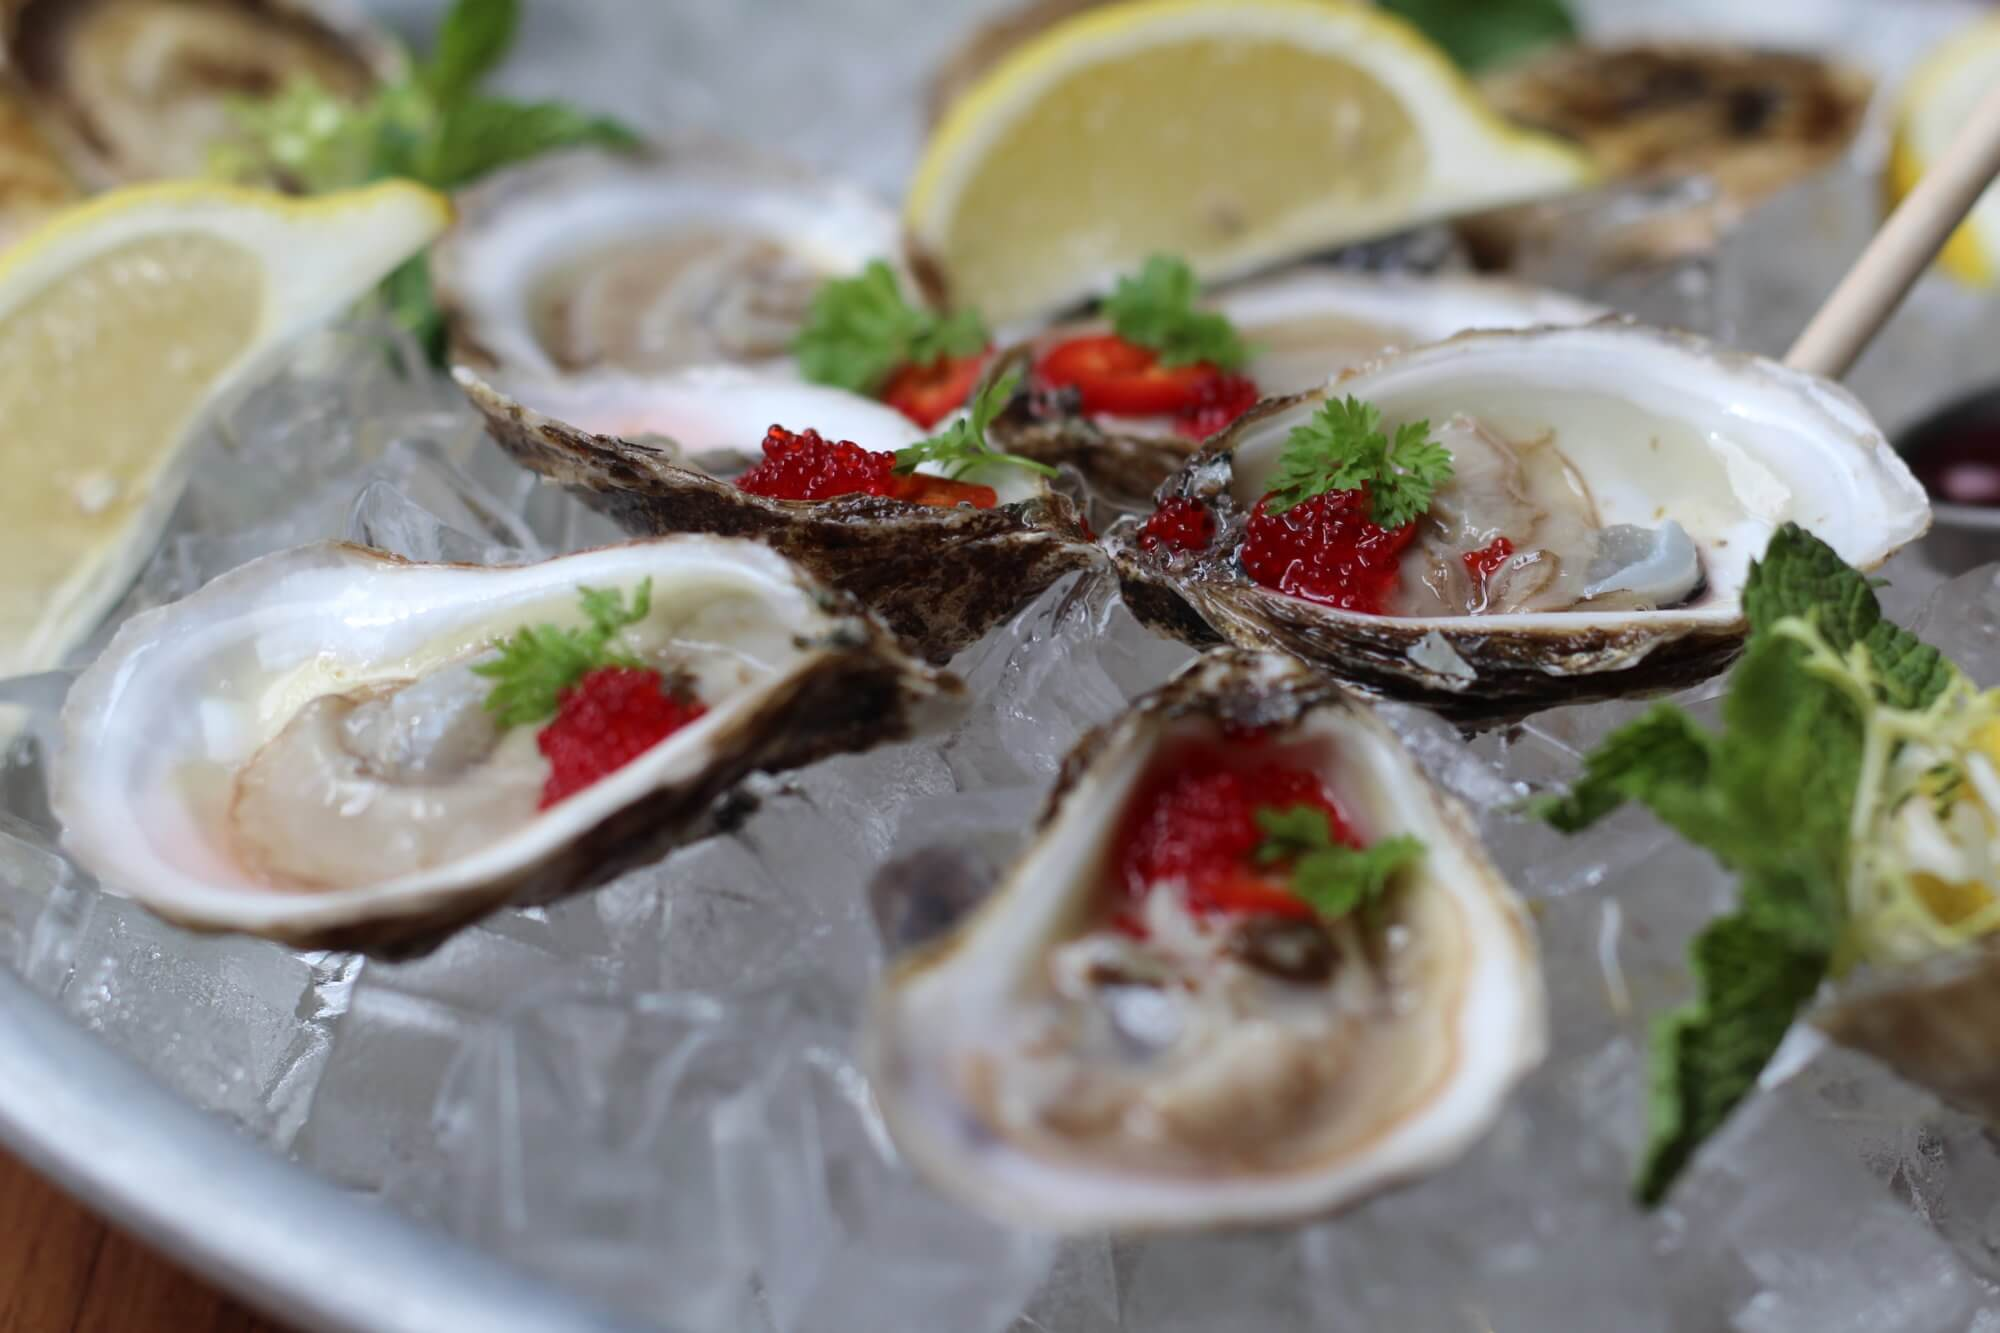 Oyster $1